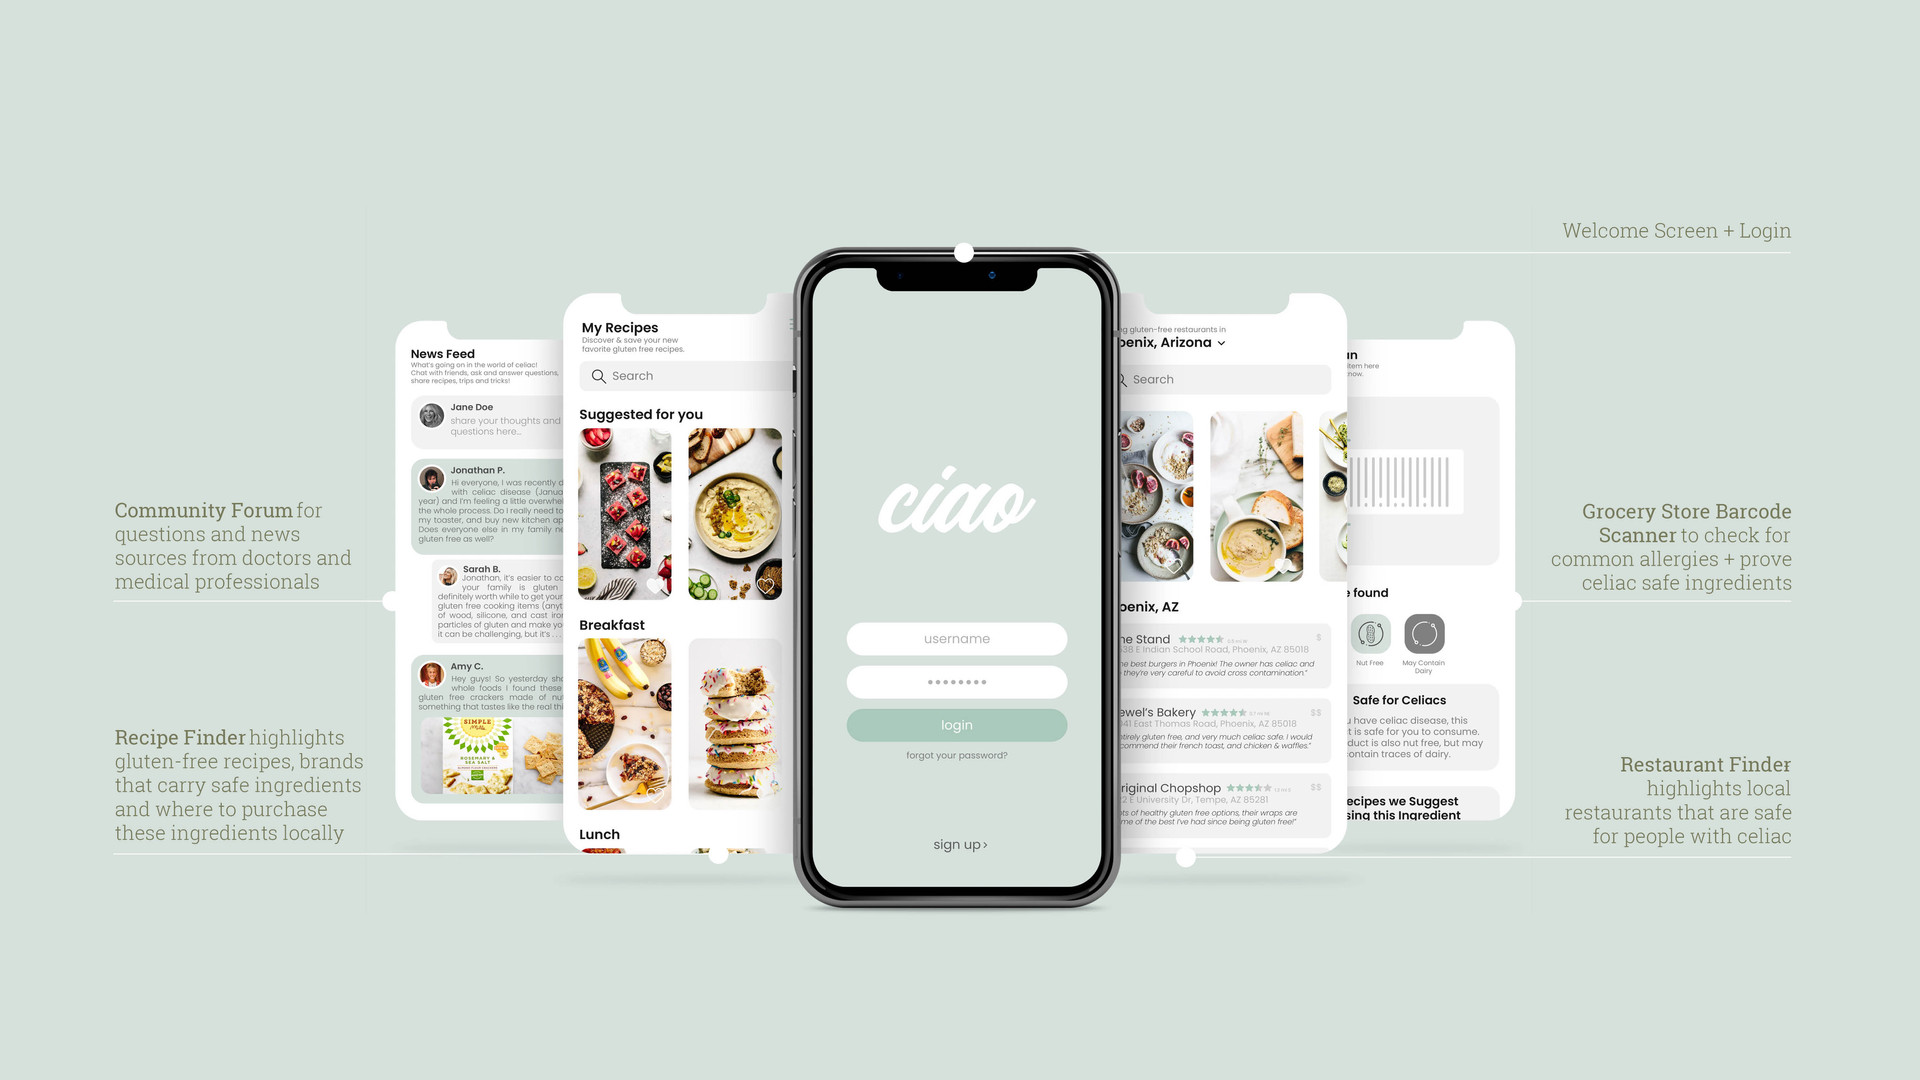 Ciao: Celiac Cooking Kit